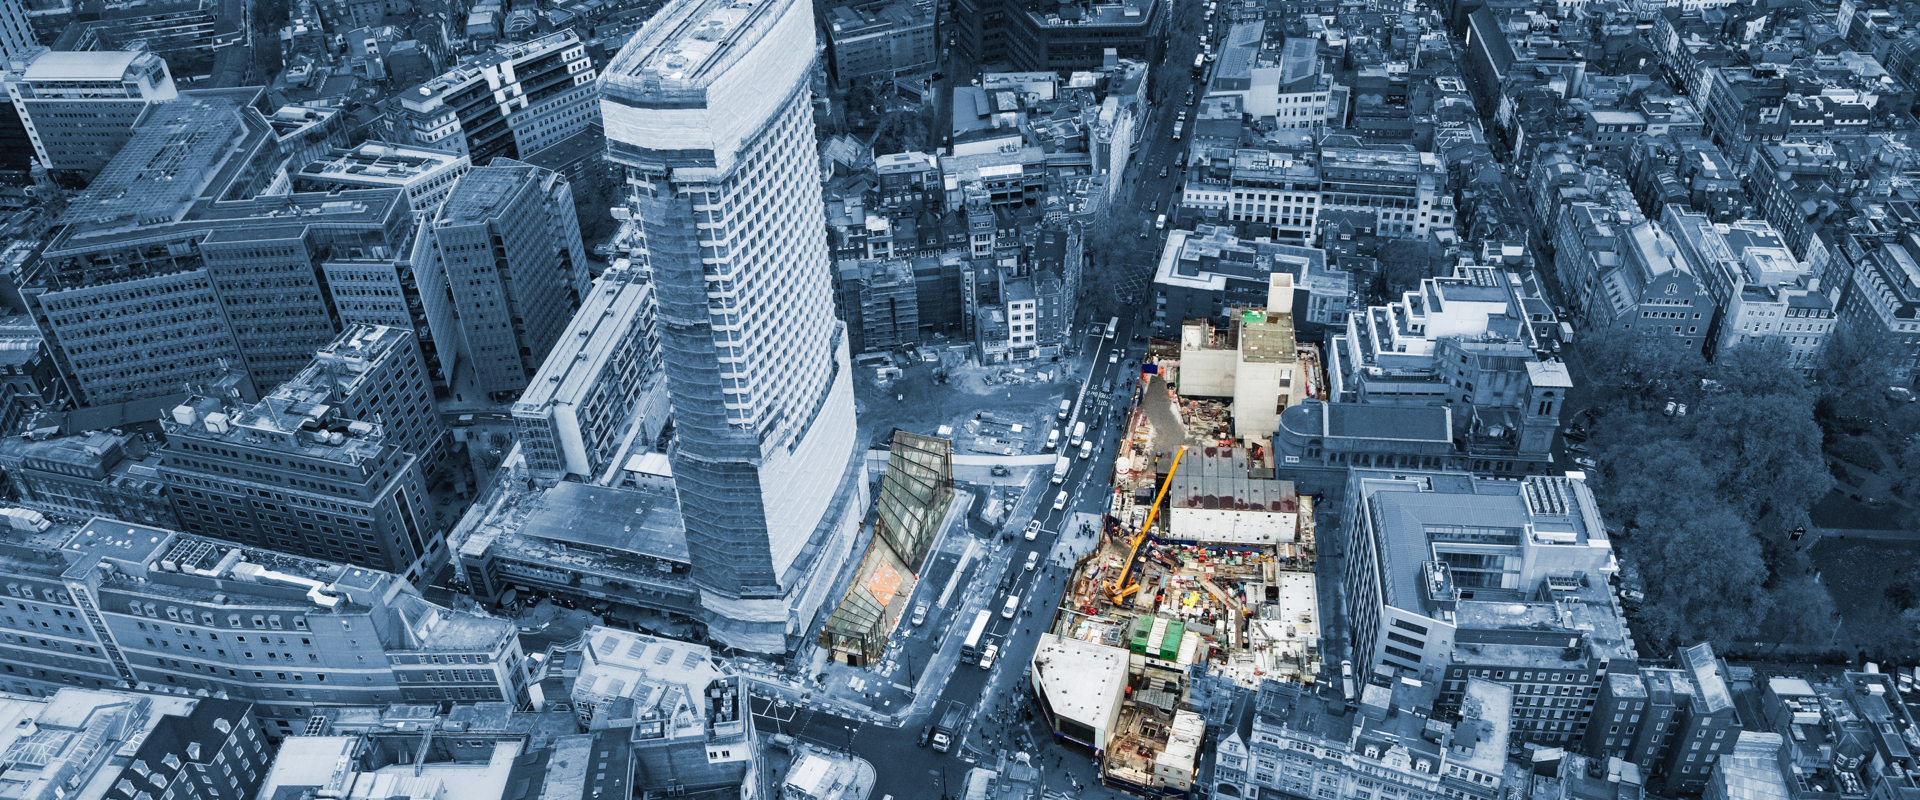 Aerial view of Tottenham Court Road station_carousel